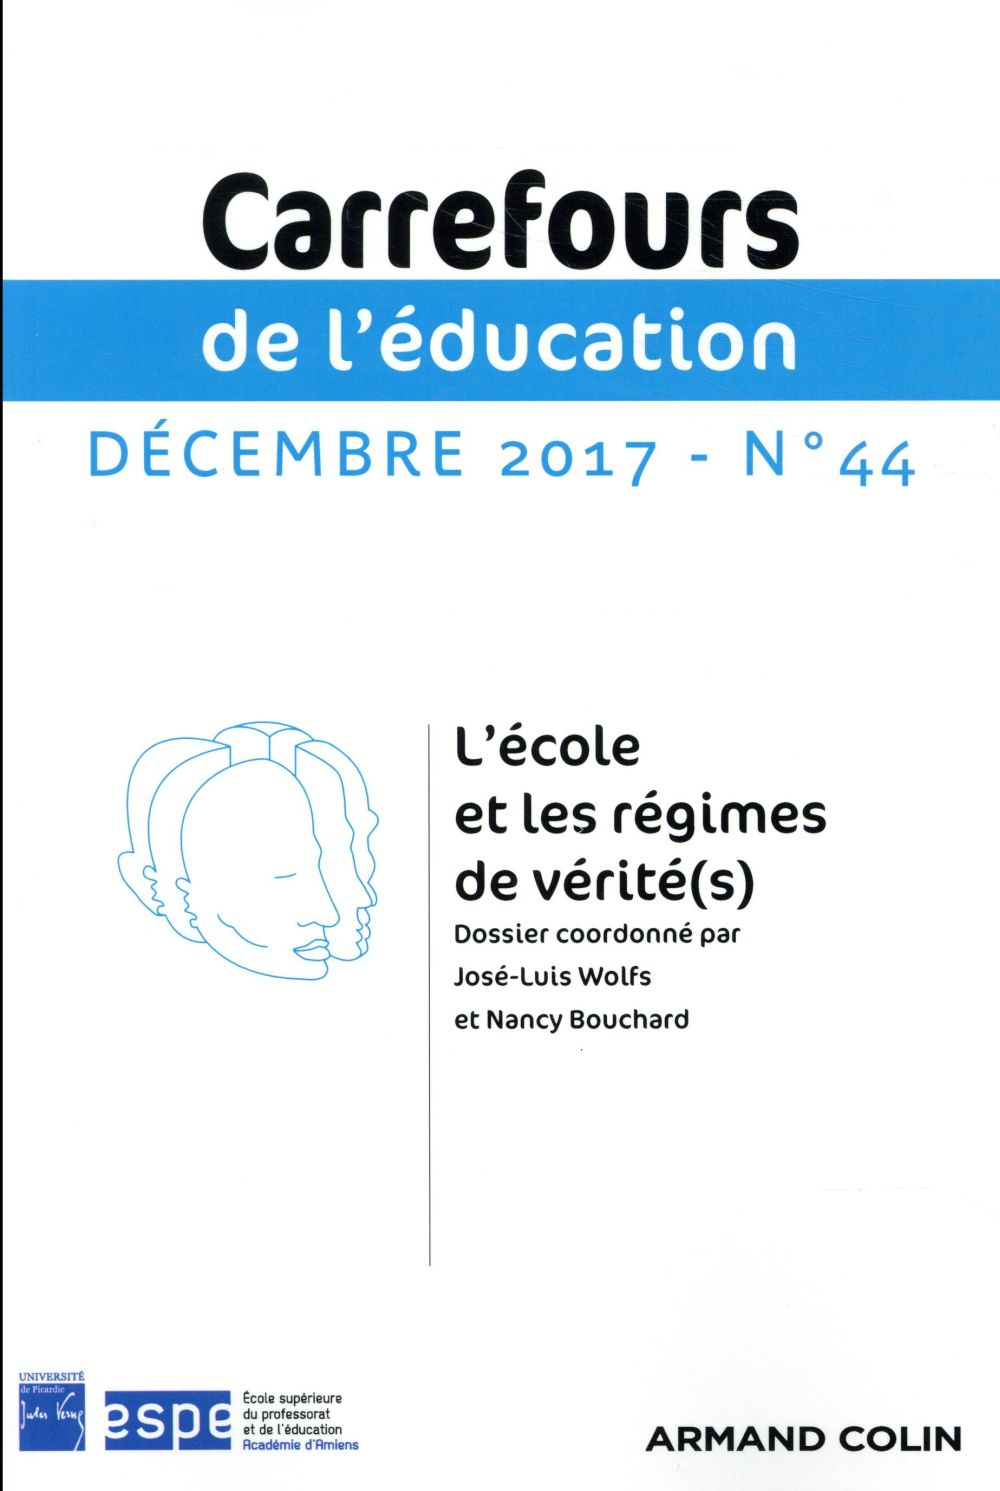 Carrefours de l'education n.44 ; 2/2017